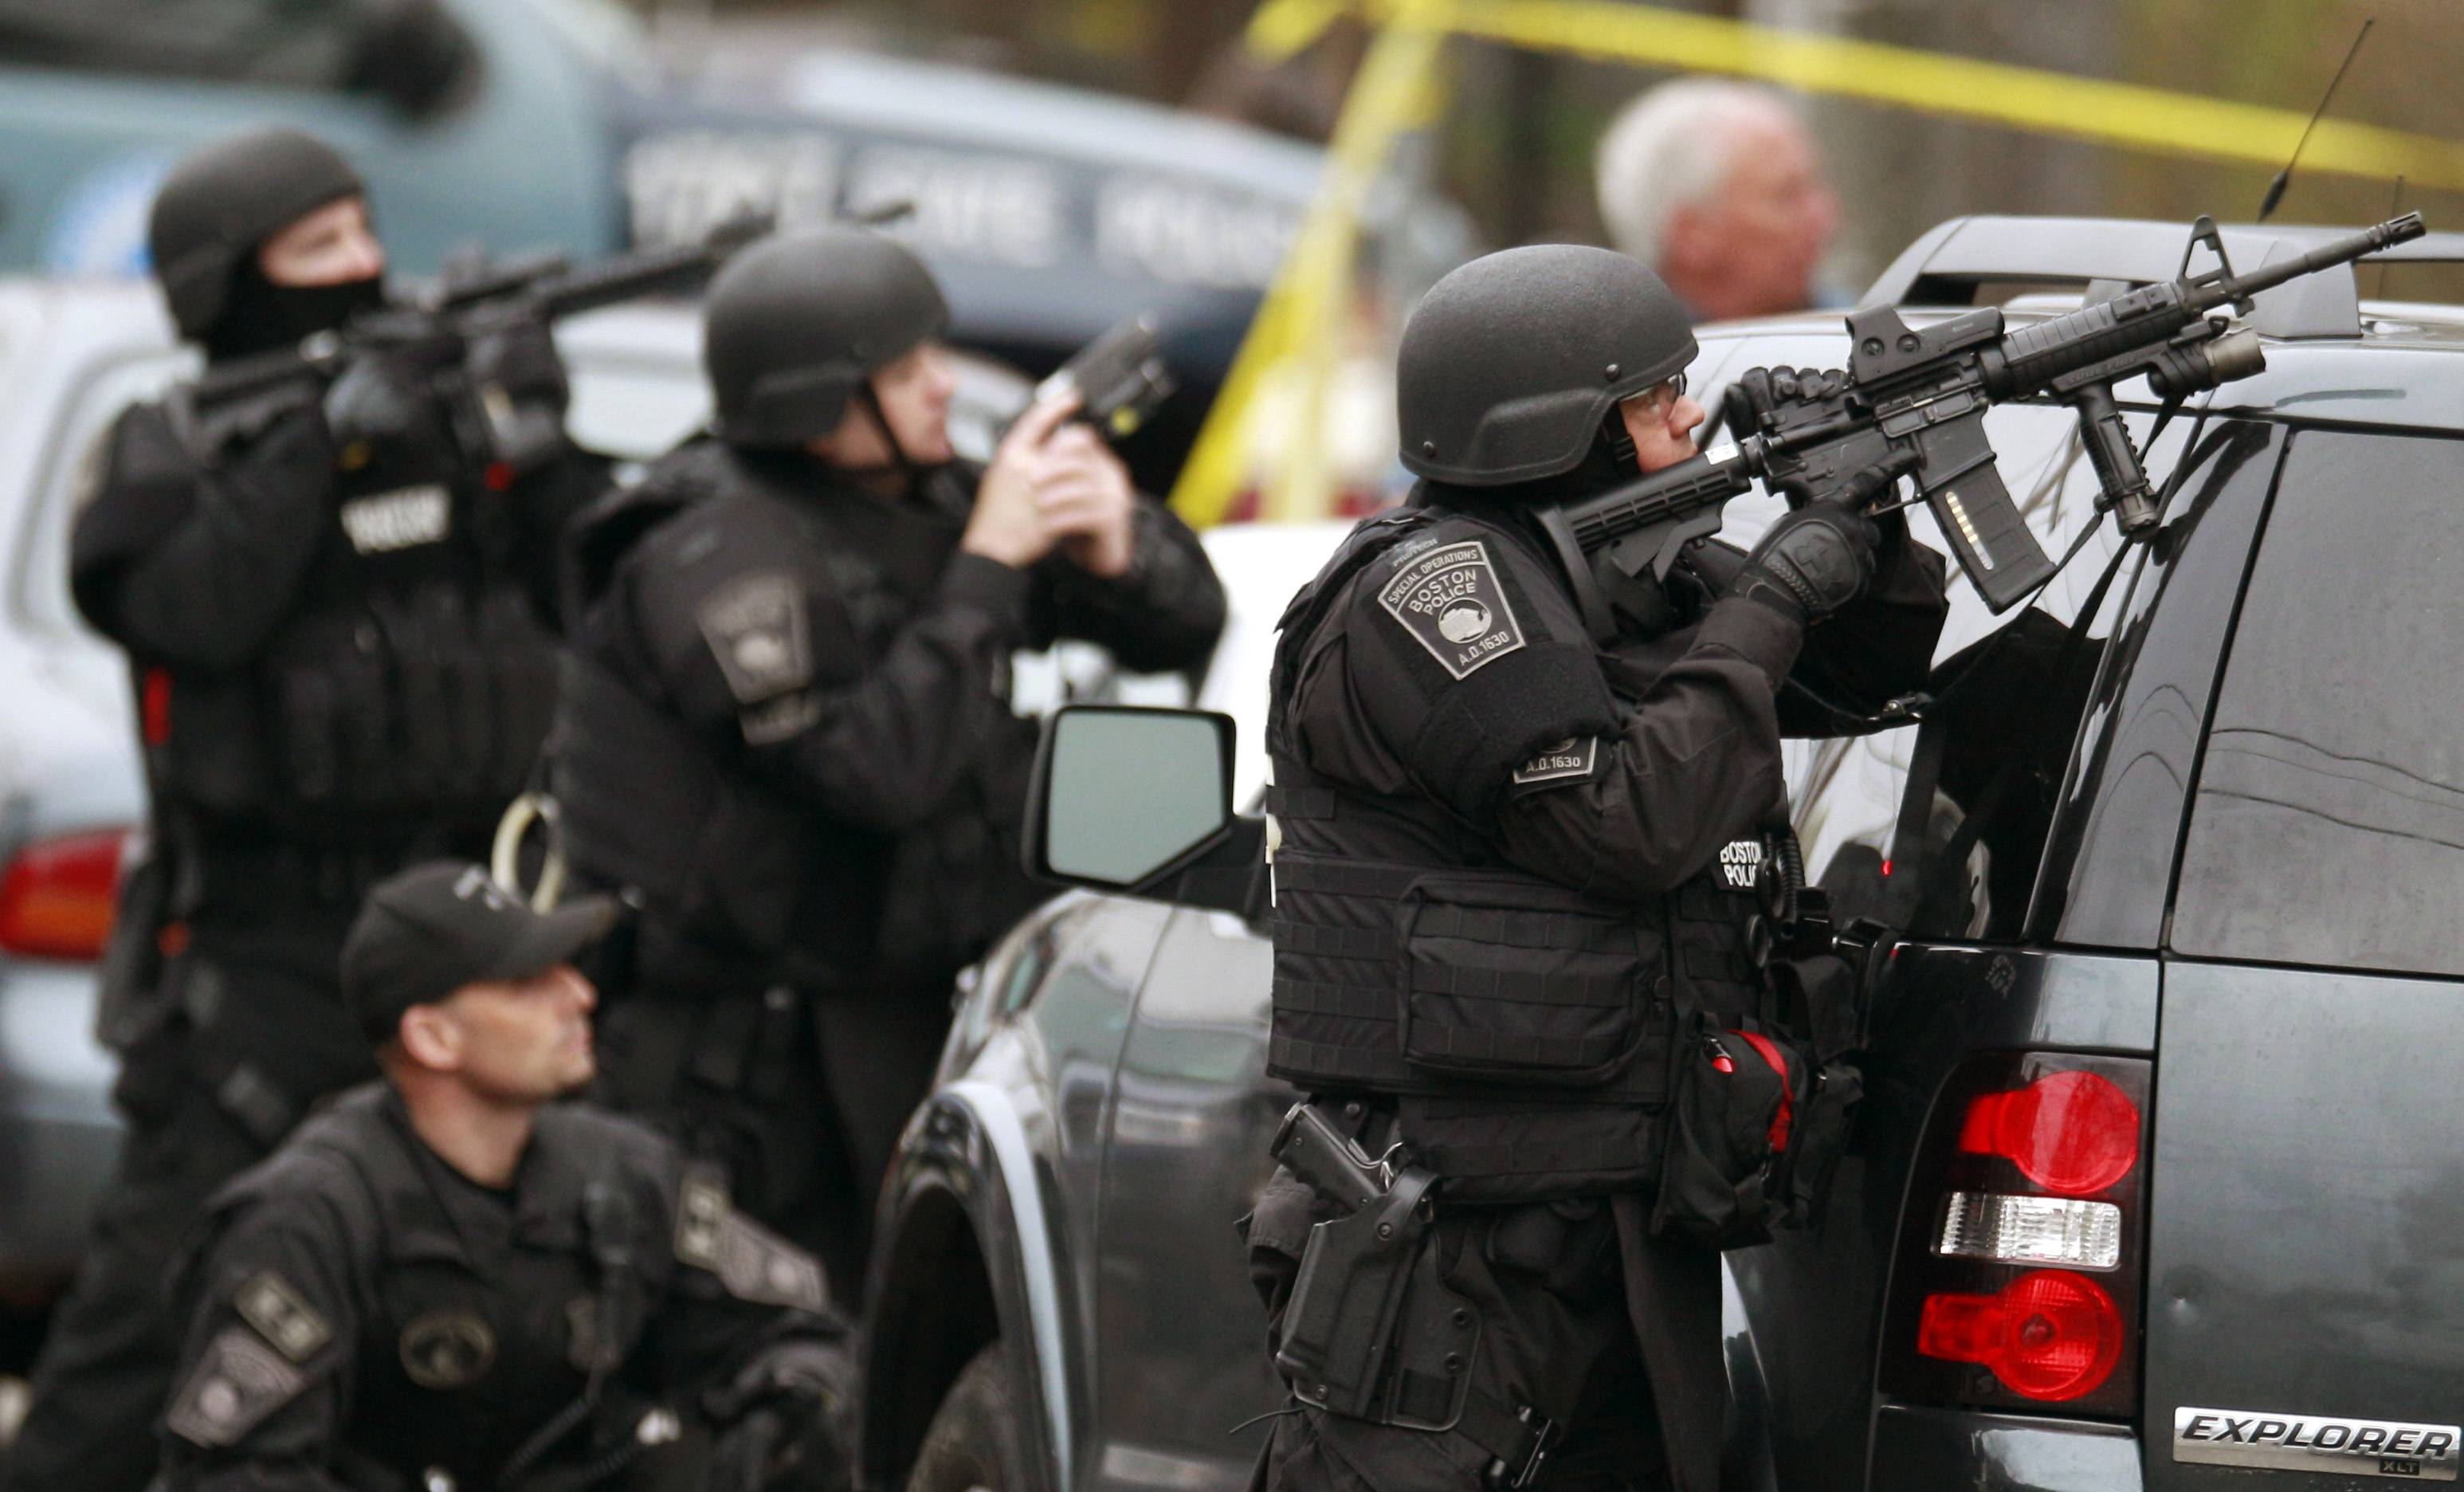 In this April 19, 2013 file photo, police in tactical gear surround an apartment building while looking for a suspect in the Boston Marathon bombings in Watertown, Mass. A Harvard University report released Thursday, April 3, 2014, on the response to the bombings was largely positive, but criticized law enforcement for the chaotic gunfight in which one suspect was killed and a police officer seriously injured because it lacked coordination.